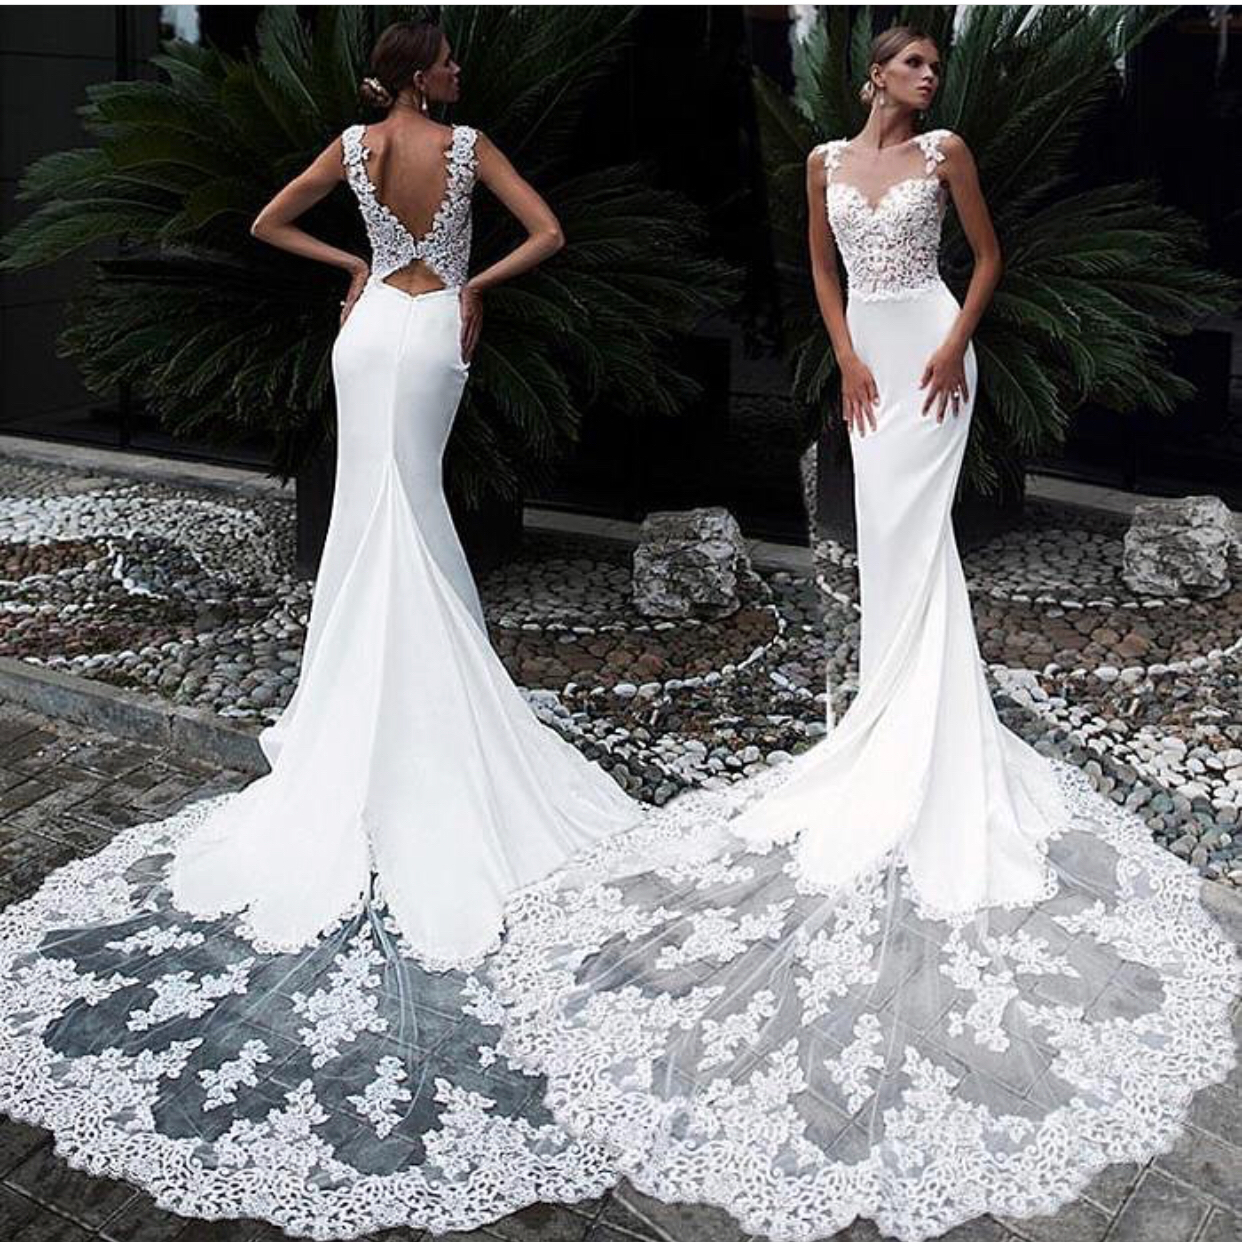 Bridal Dresses 2019: Mermaid Wedding Dress, Lace Applique Wedding Dress, Sexy